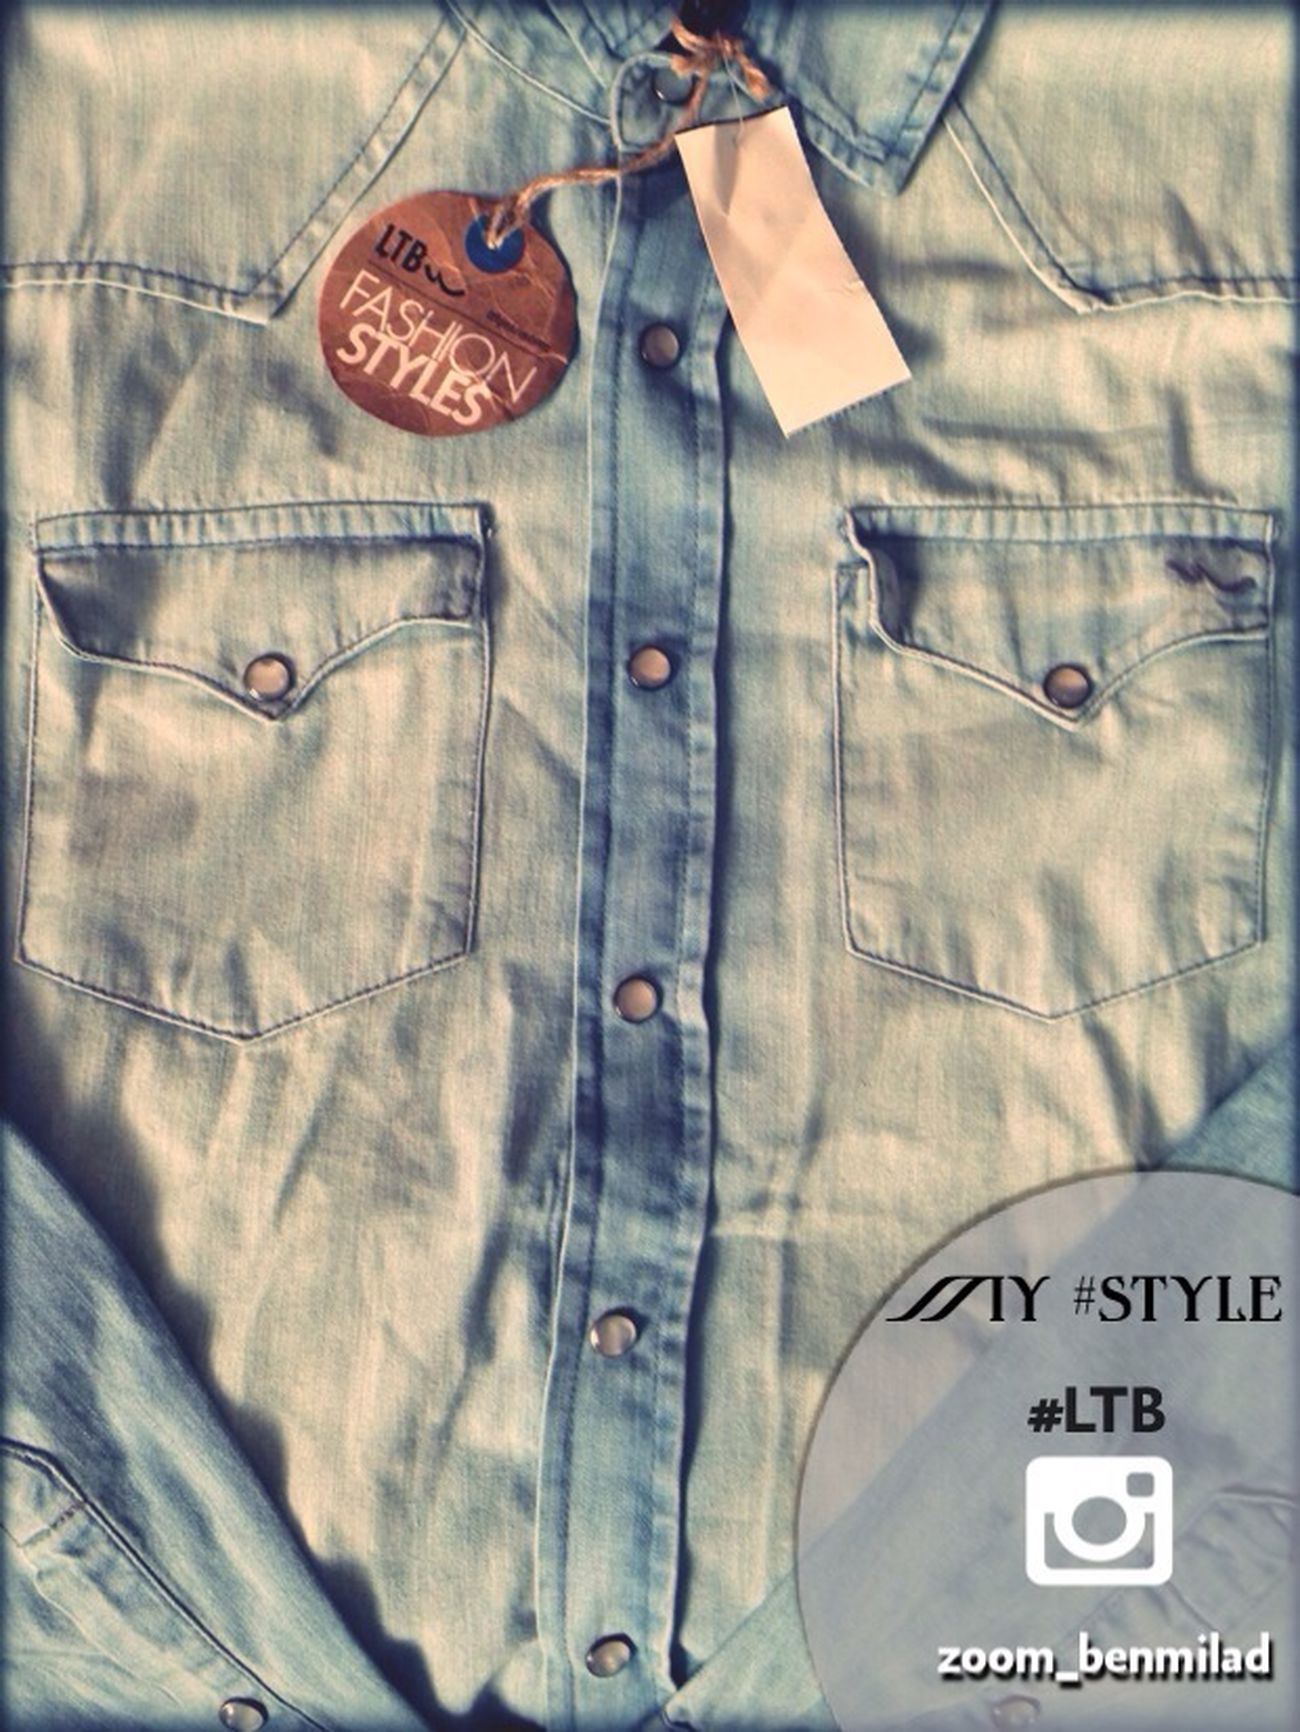 My_style Cool By_me Follow Me